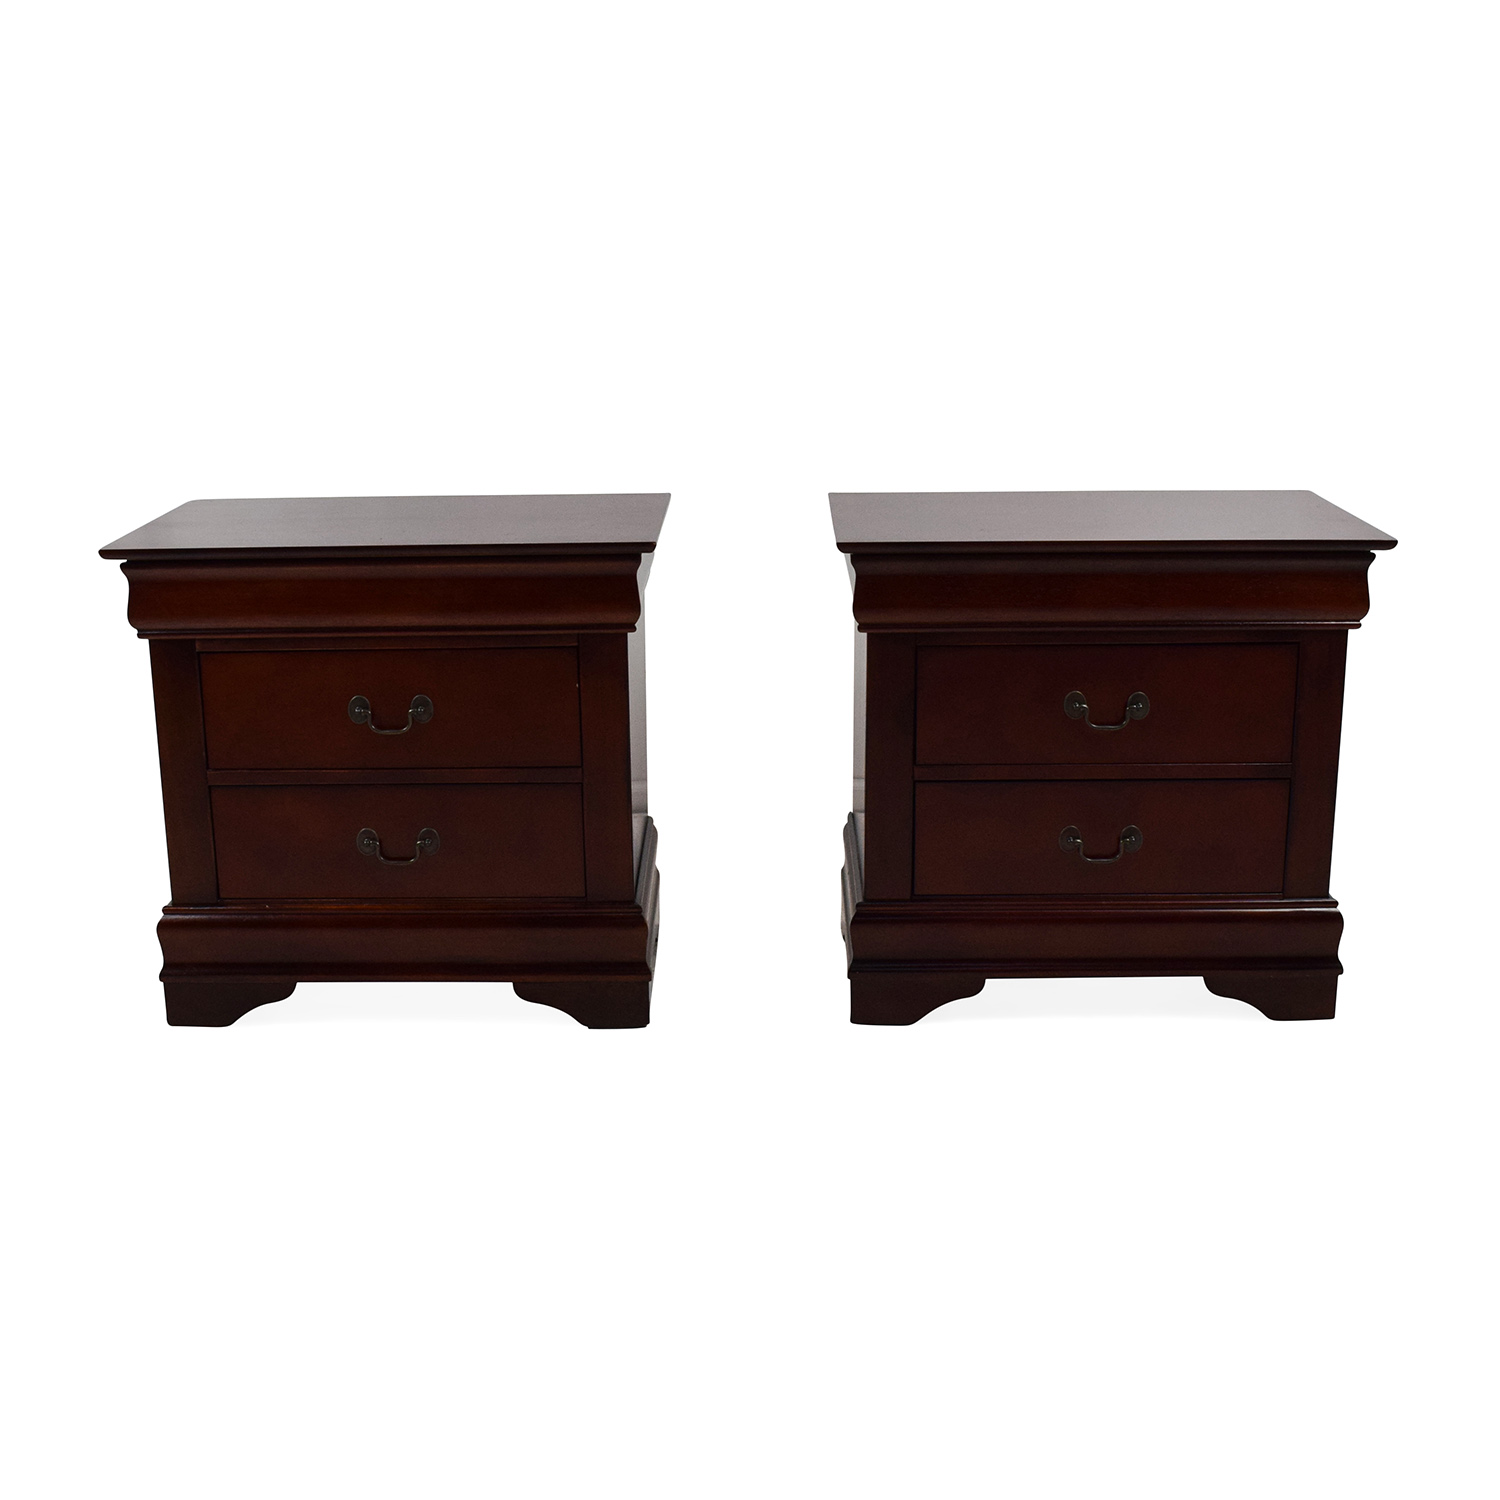 shop Set of 2 Wooden Nightstands with Drawers